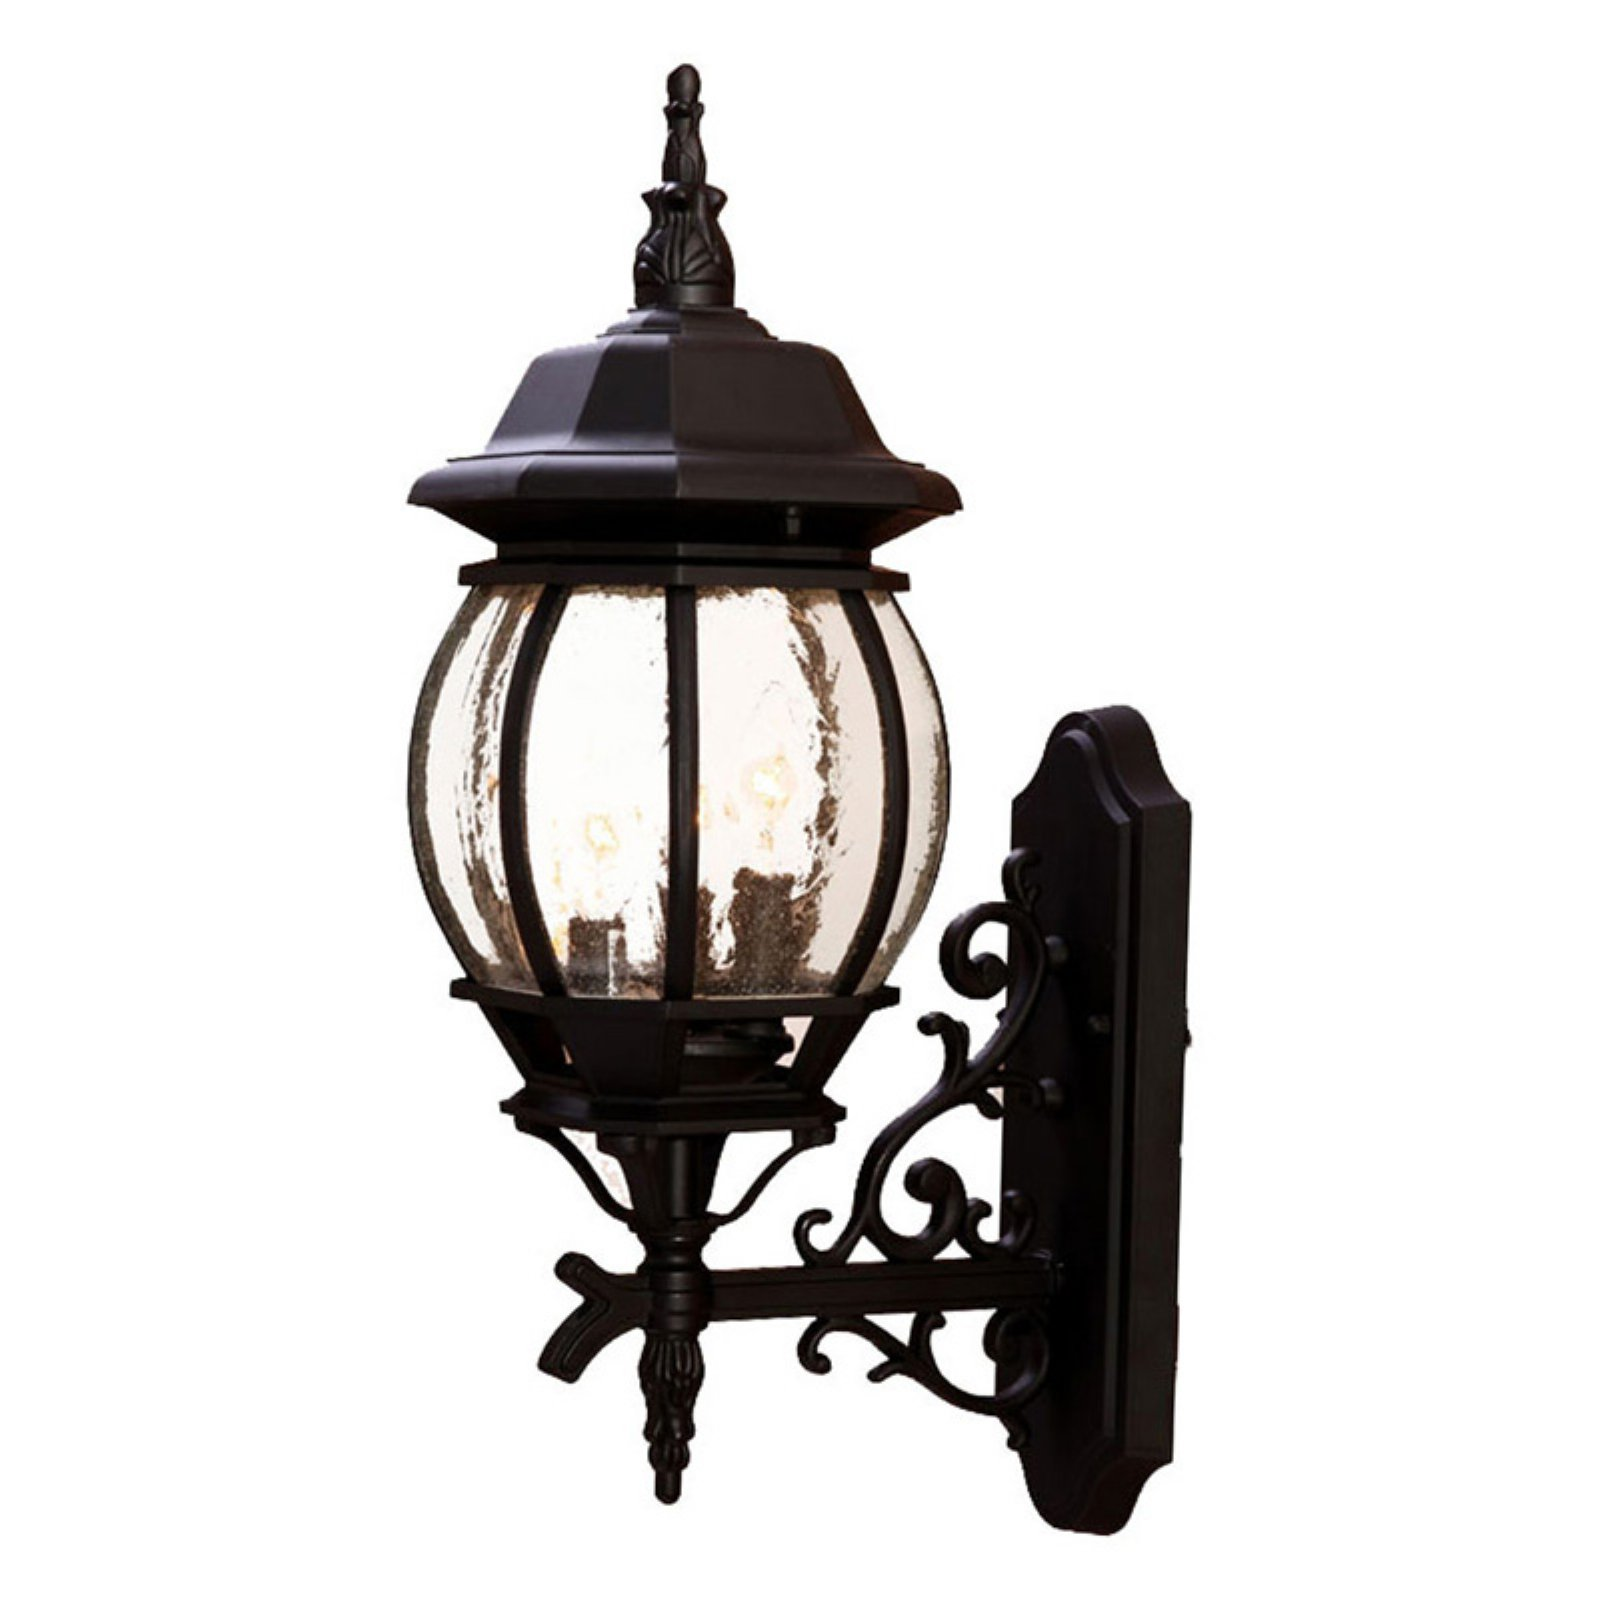 Acclaim Lighting Chateau 3 Light Outdoor Wall Mount Light Fixture